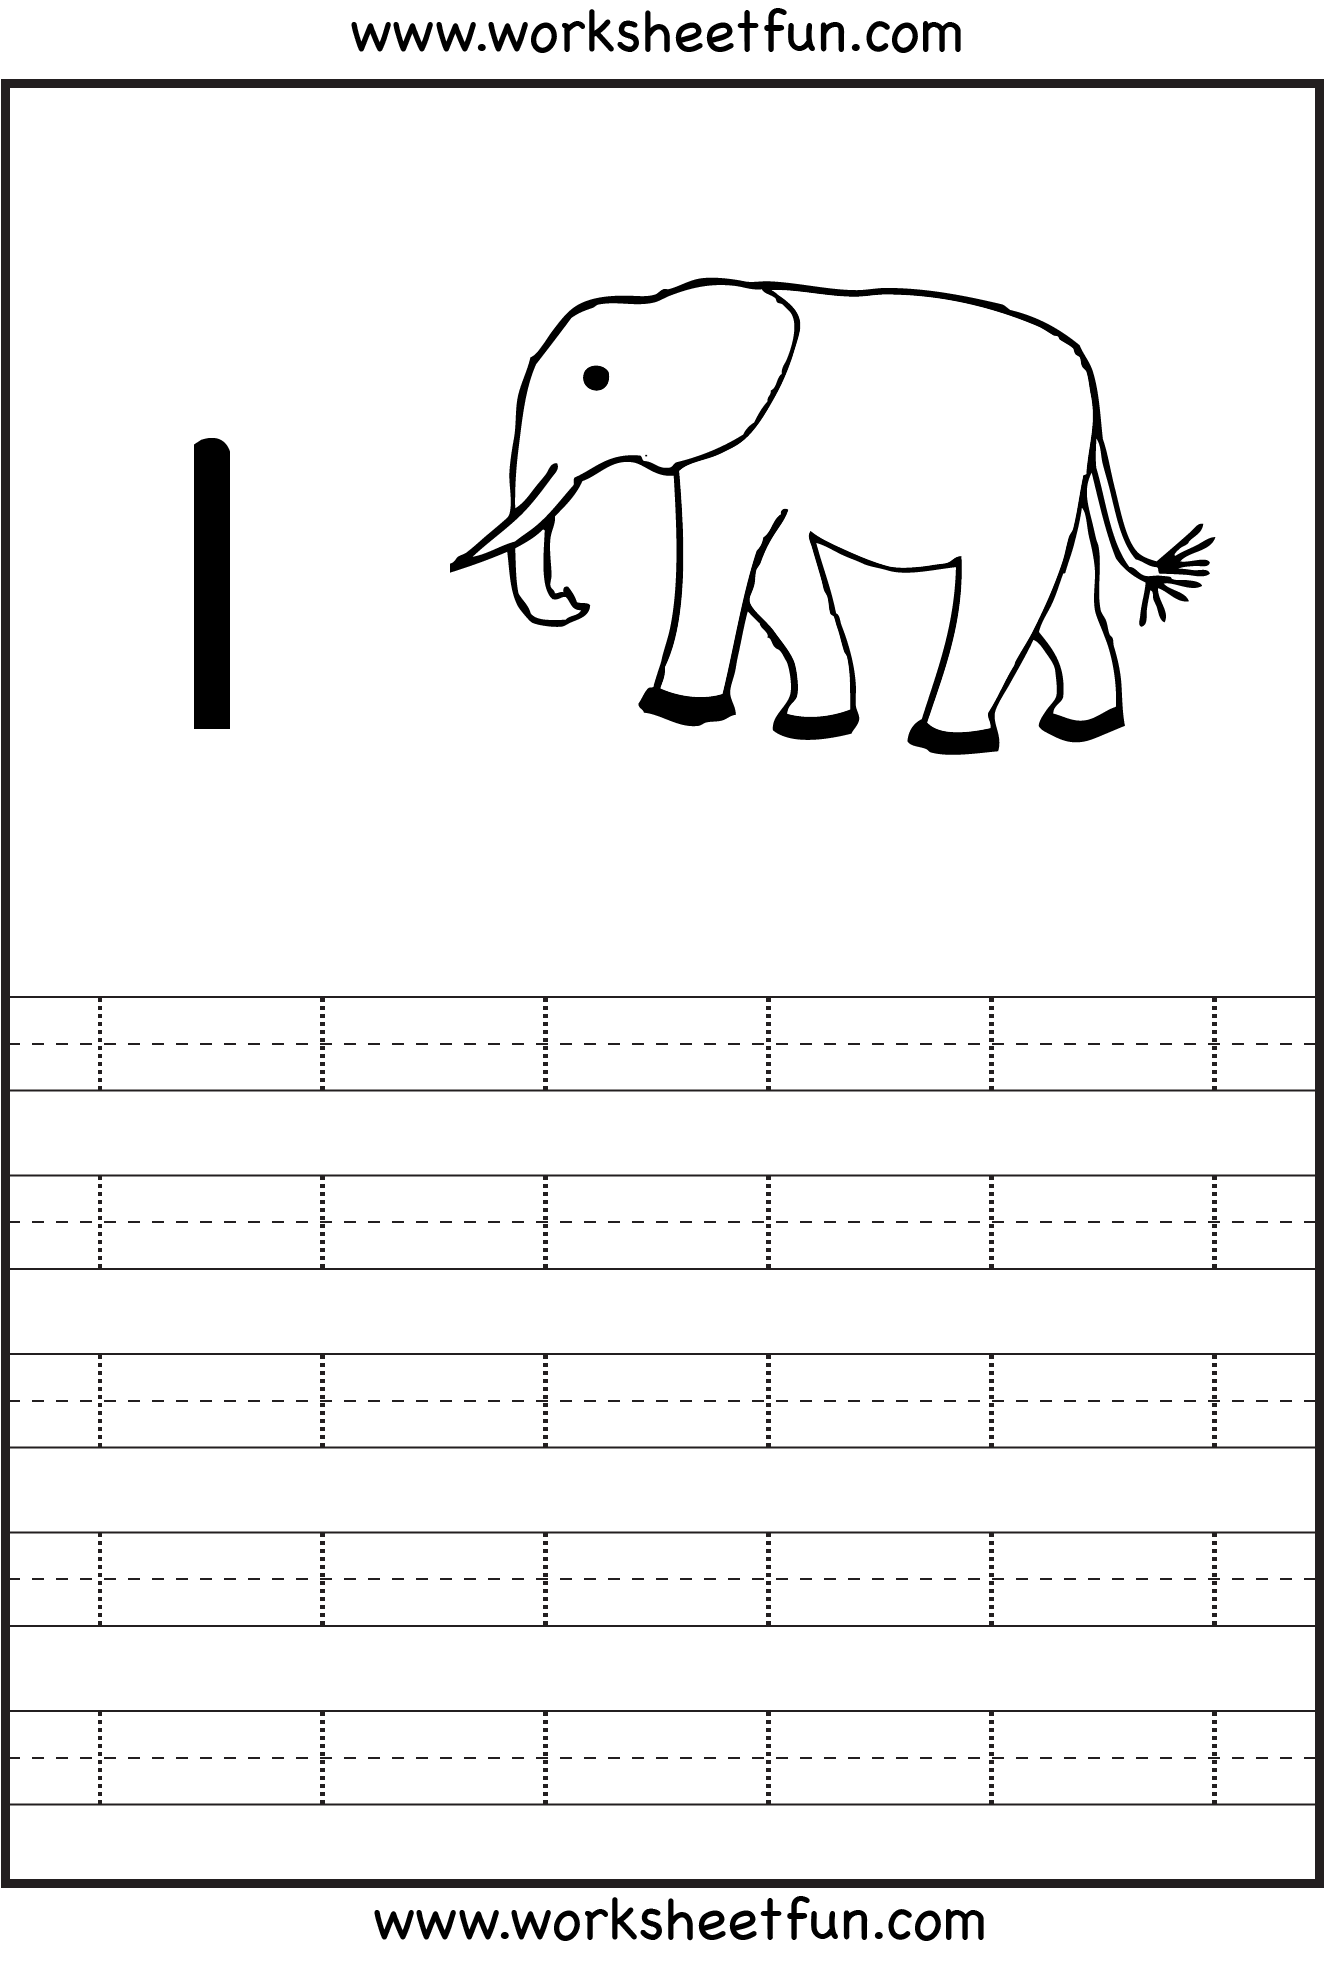 Worksheets Preschool Number 1 Worksheets 1000 images about number worksheets on pinterest tracing free printable and worksheets